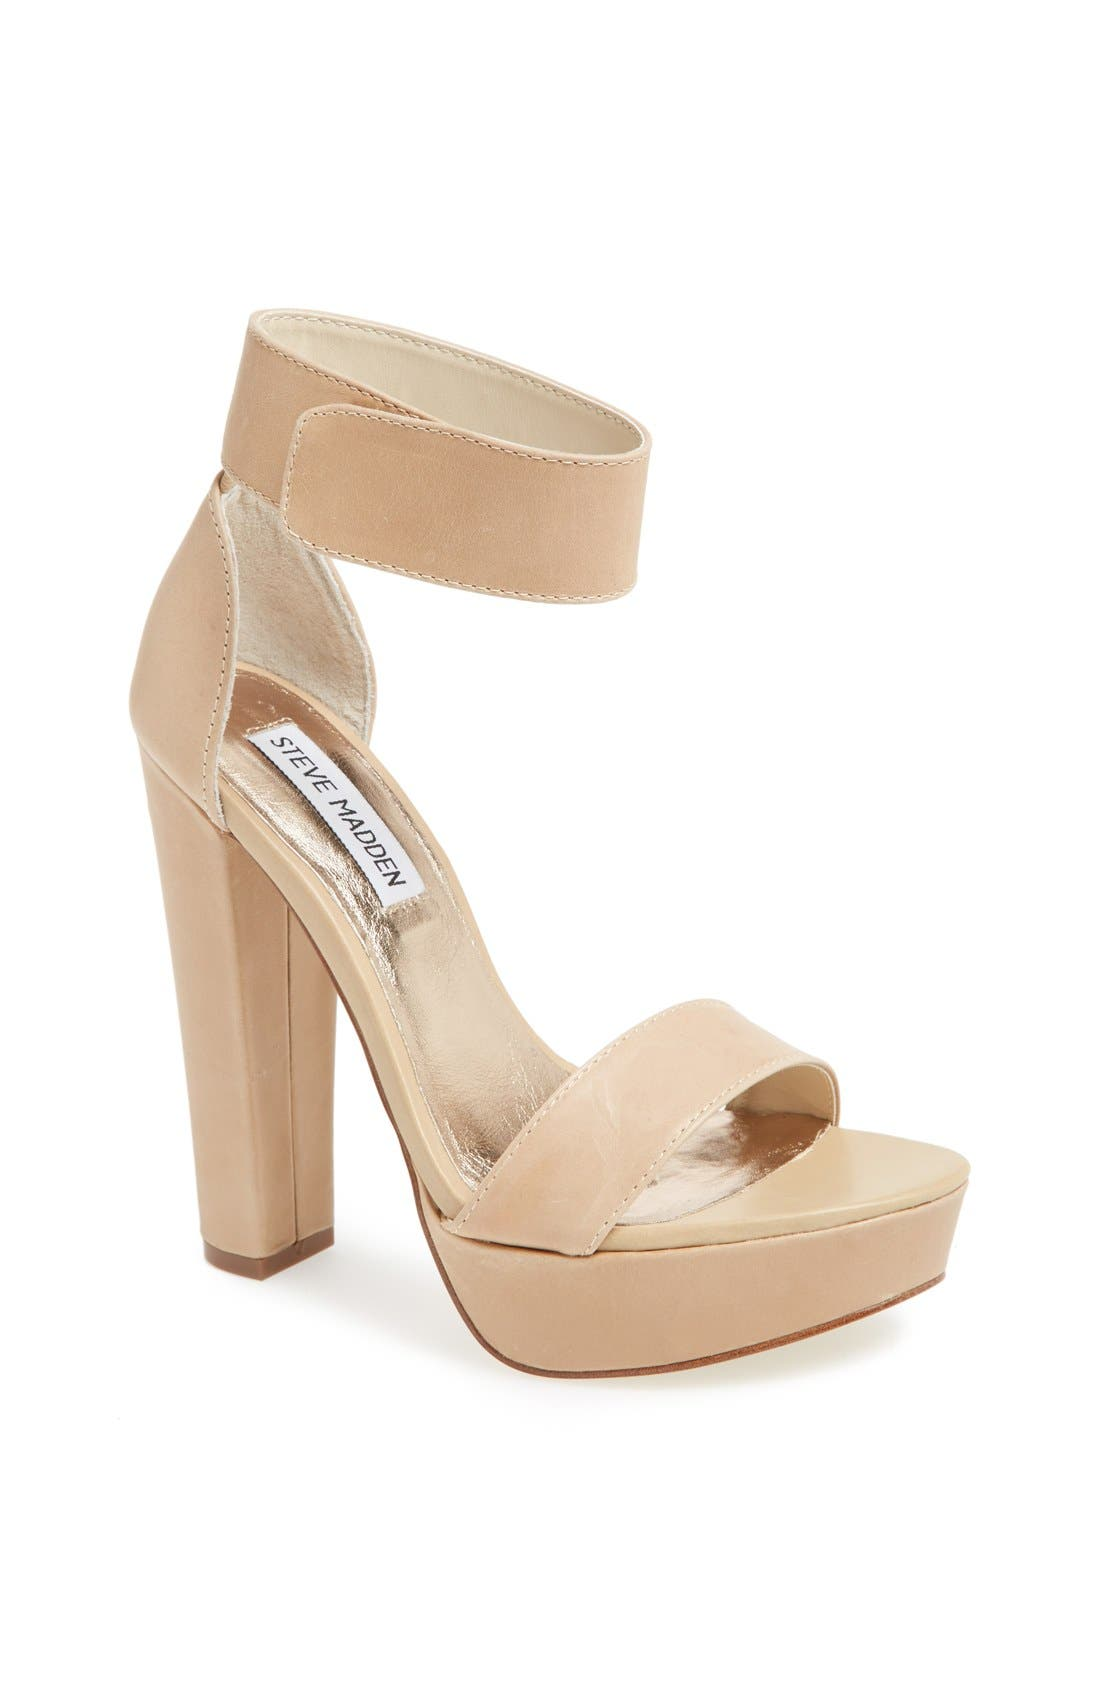 Alternate Image 1 Selected - Steve Madden 'Cluber' Platform Sandal